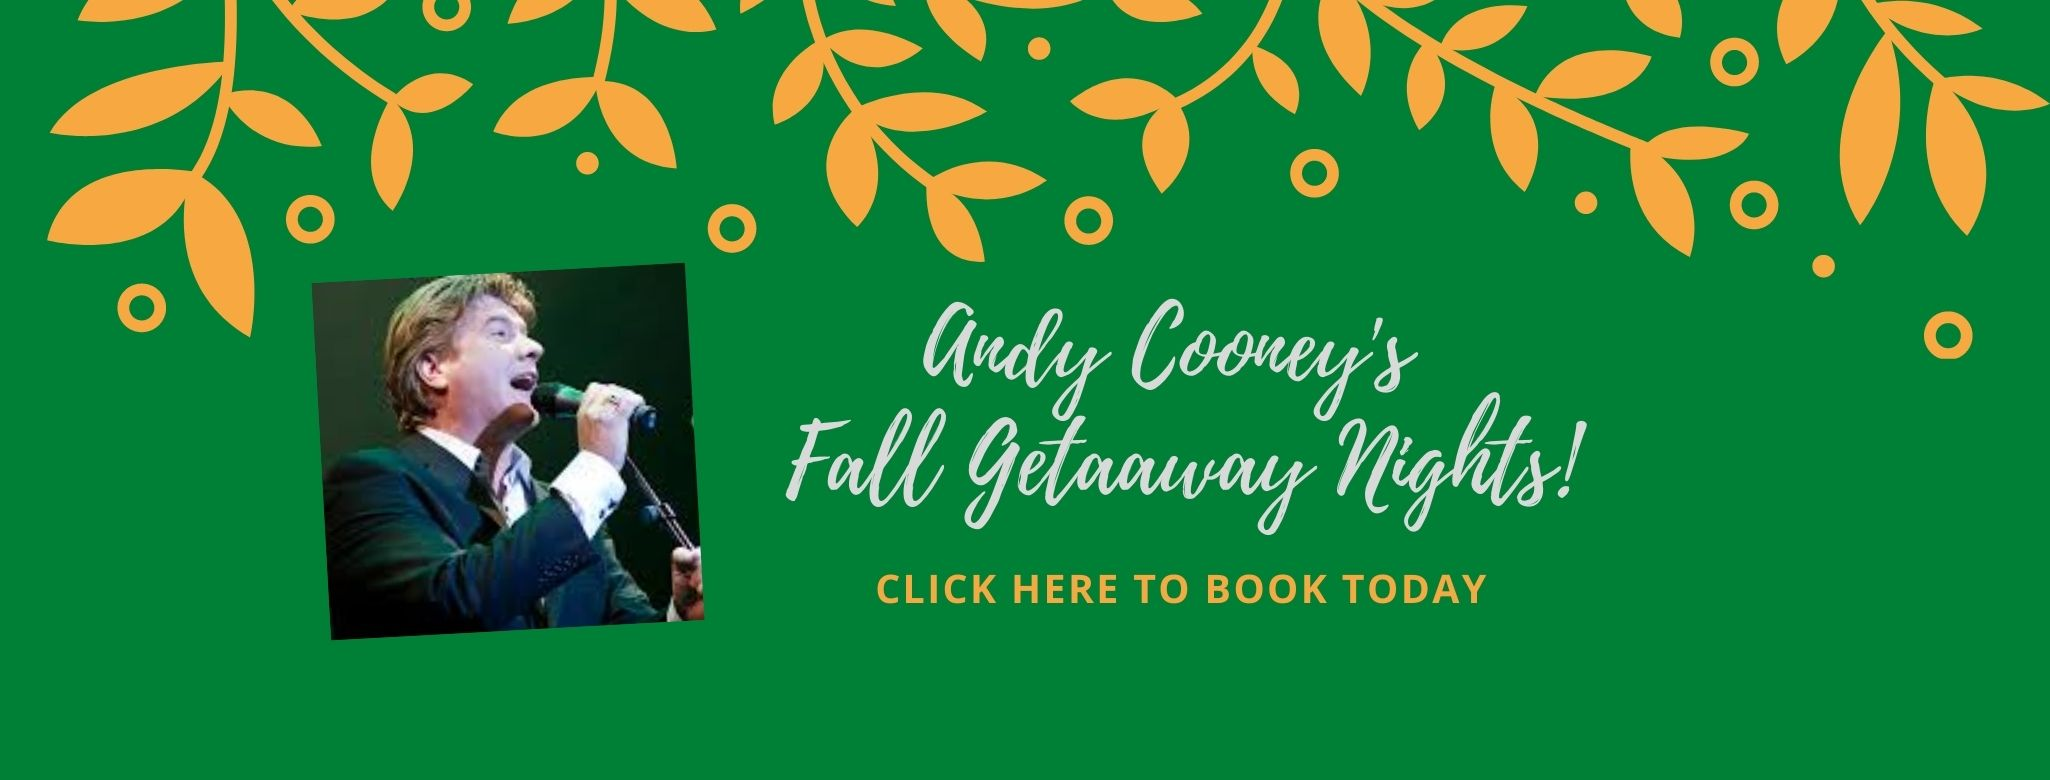 Fall Getaway Nights with Andy Cooney